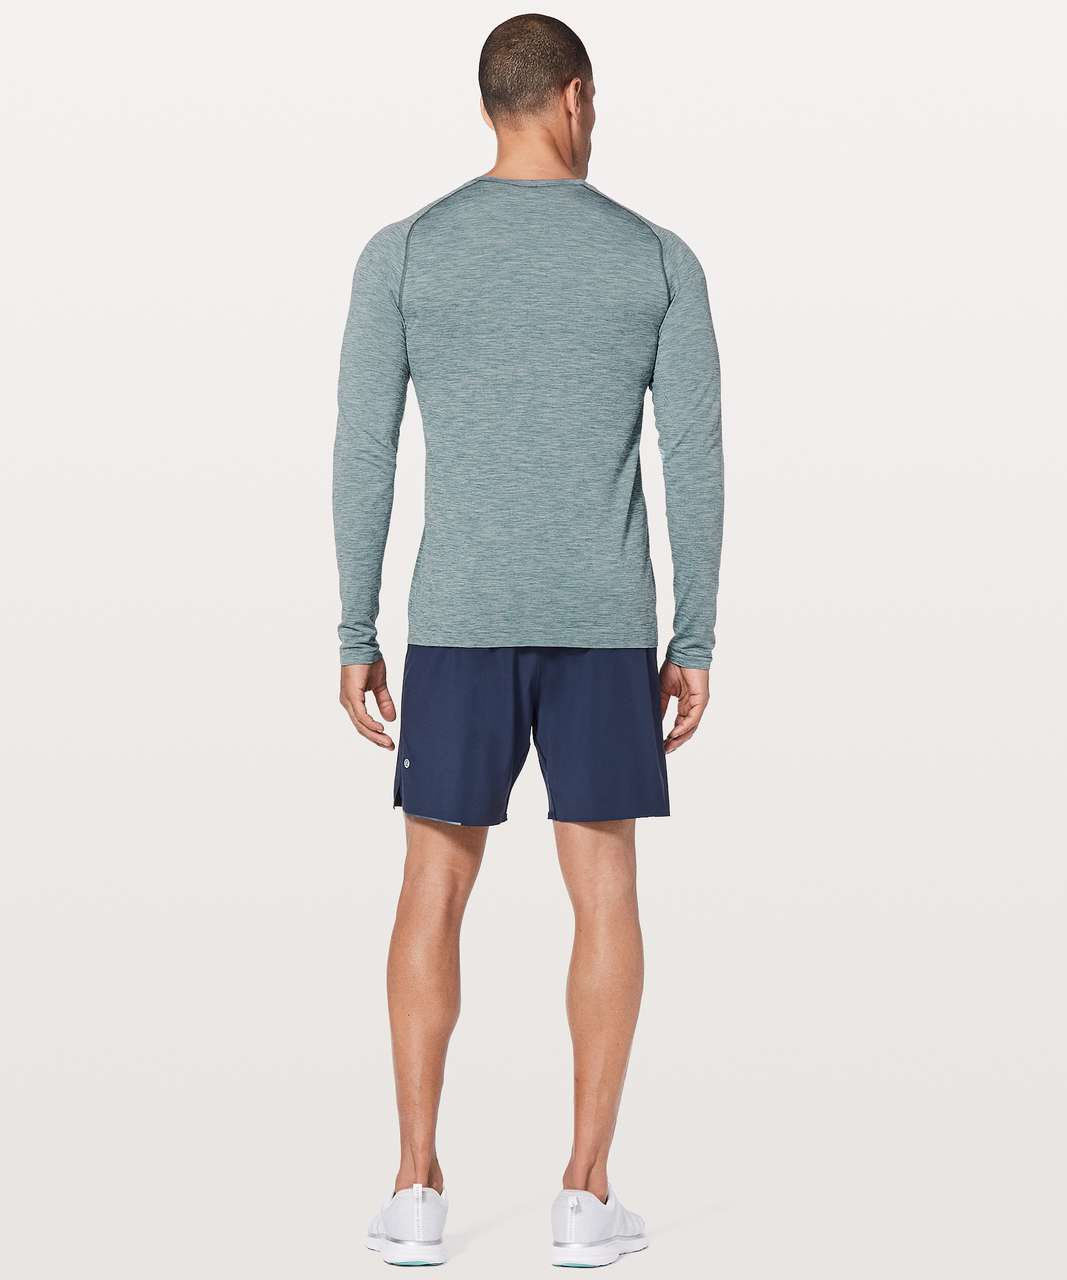 Lululemon Metal Vent Tech Surge Long Sleeve - Mystic Green / White